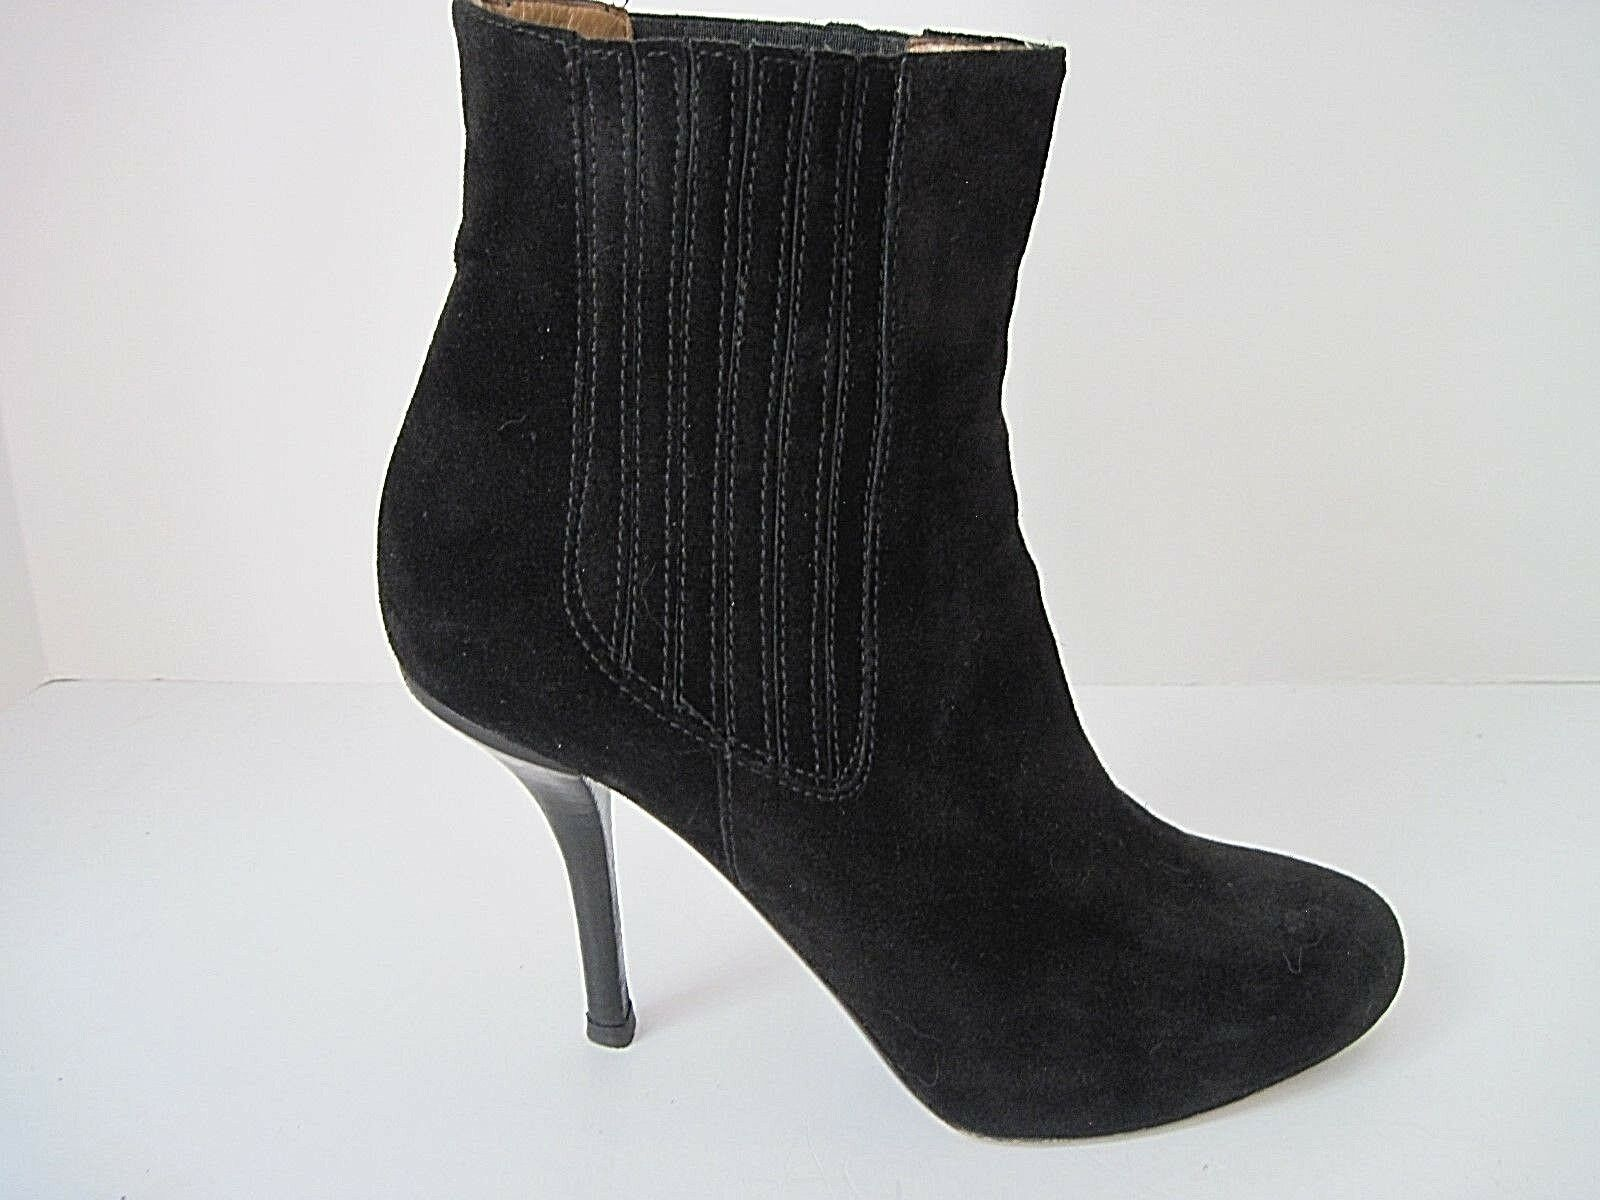 VINCE Women's Black Suede High Heel Ankle Booties Size 9.5 9.5 9.5 M   EU 41 ddcffb